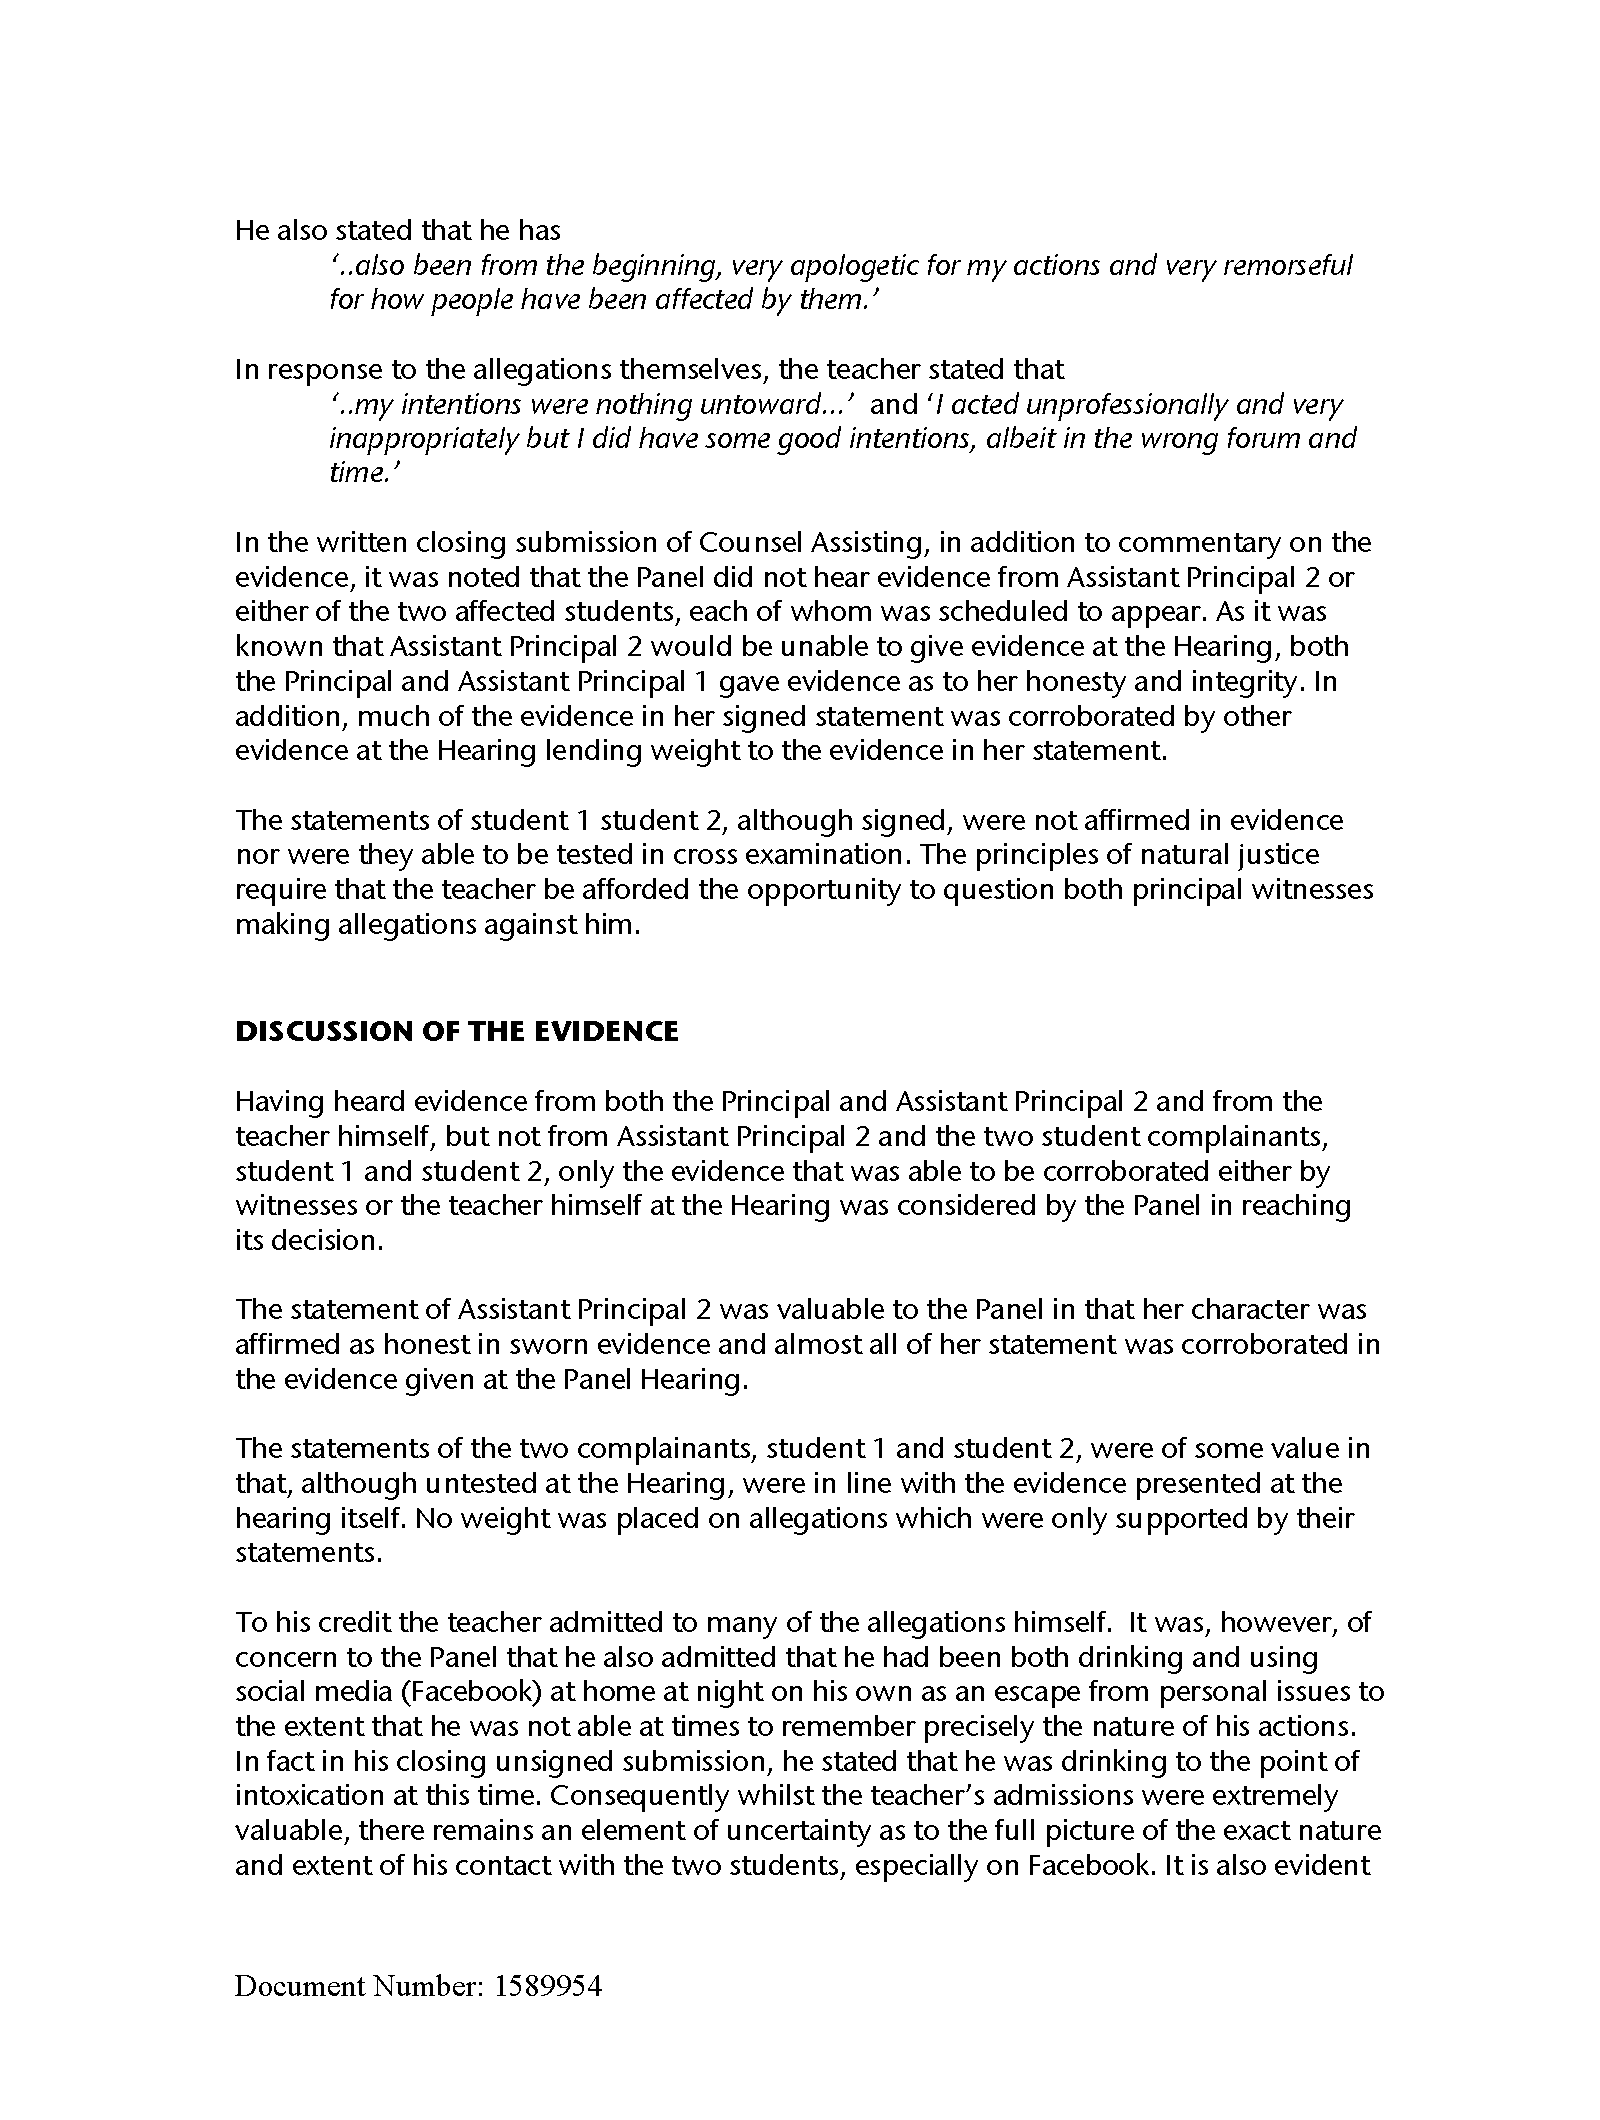 Copy of SanitisedPleydellDecision10.png